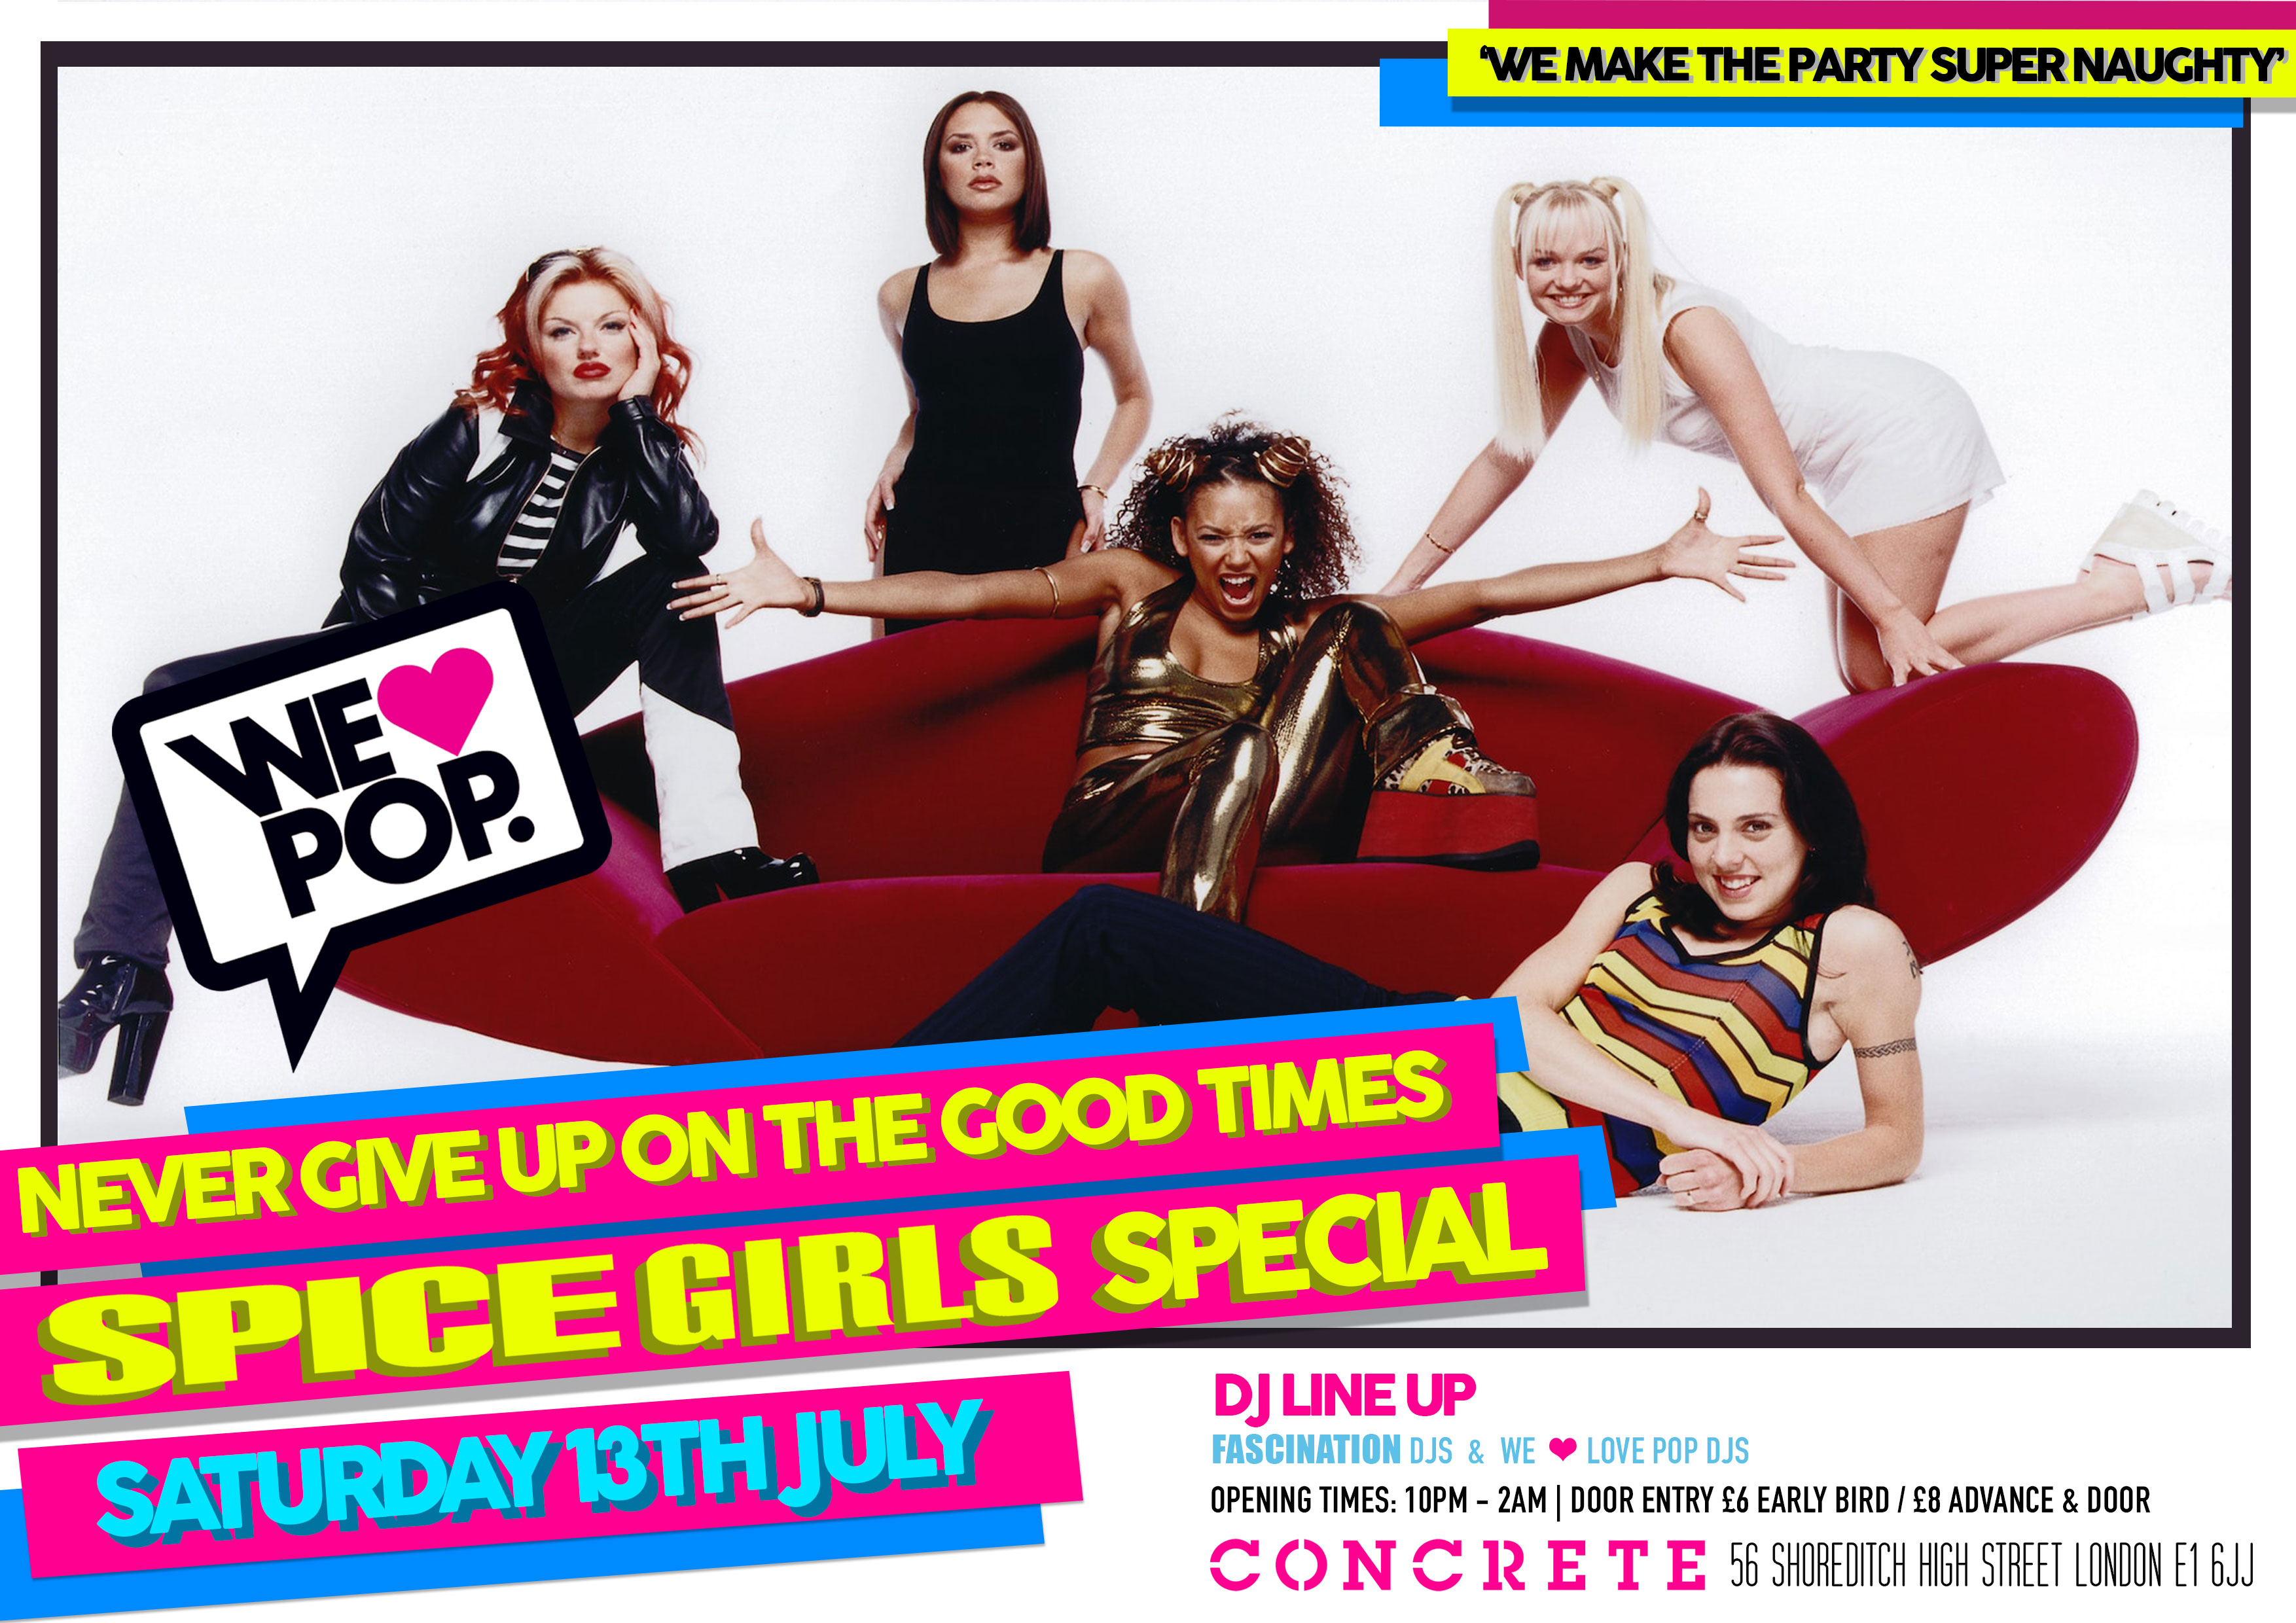 WeLovePop Club's 'Never Give Up On The Good Times' SPICE GIRLS Special